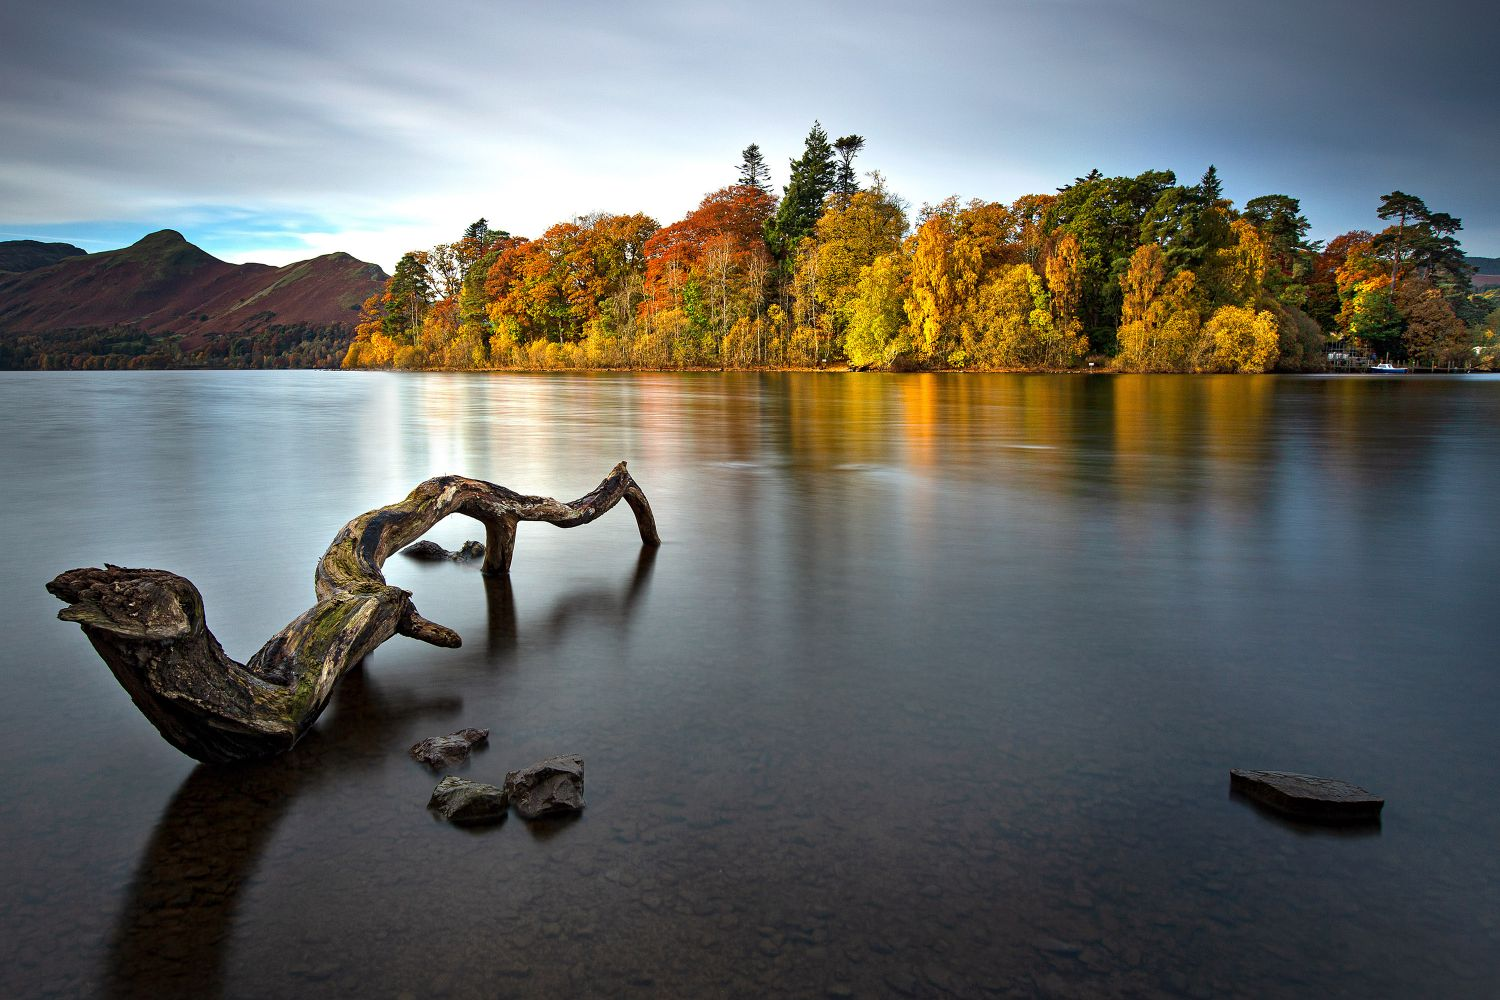 A long exposure image showing the Shades of autumn on Derwent Isle